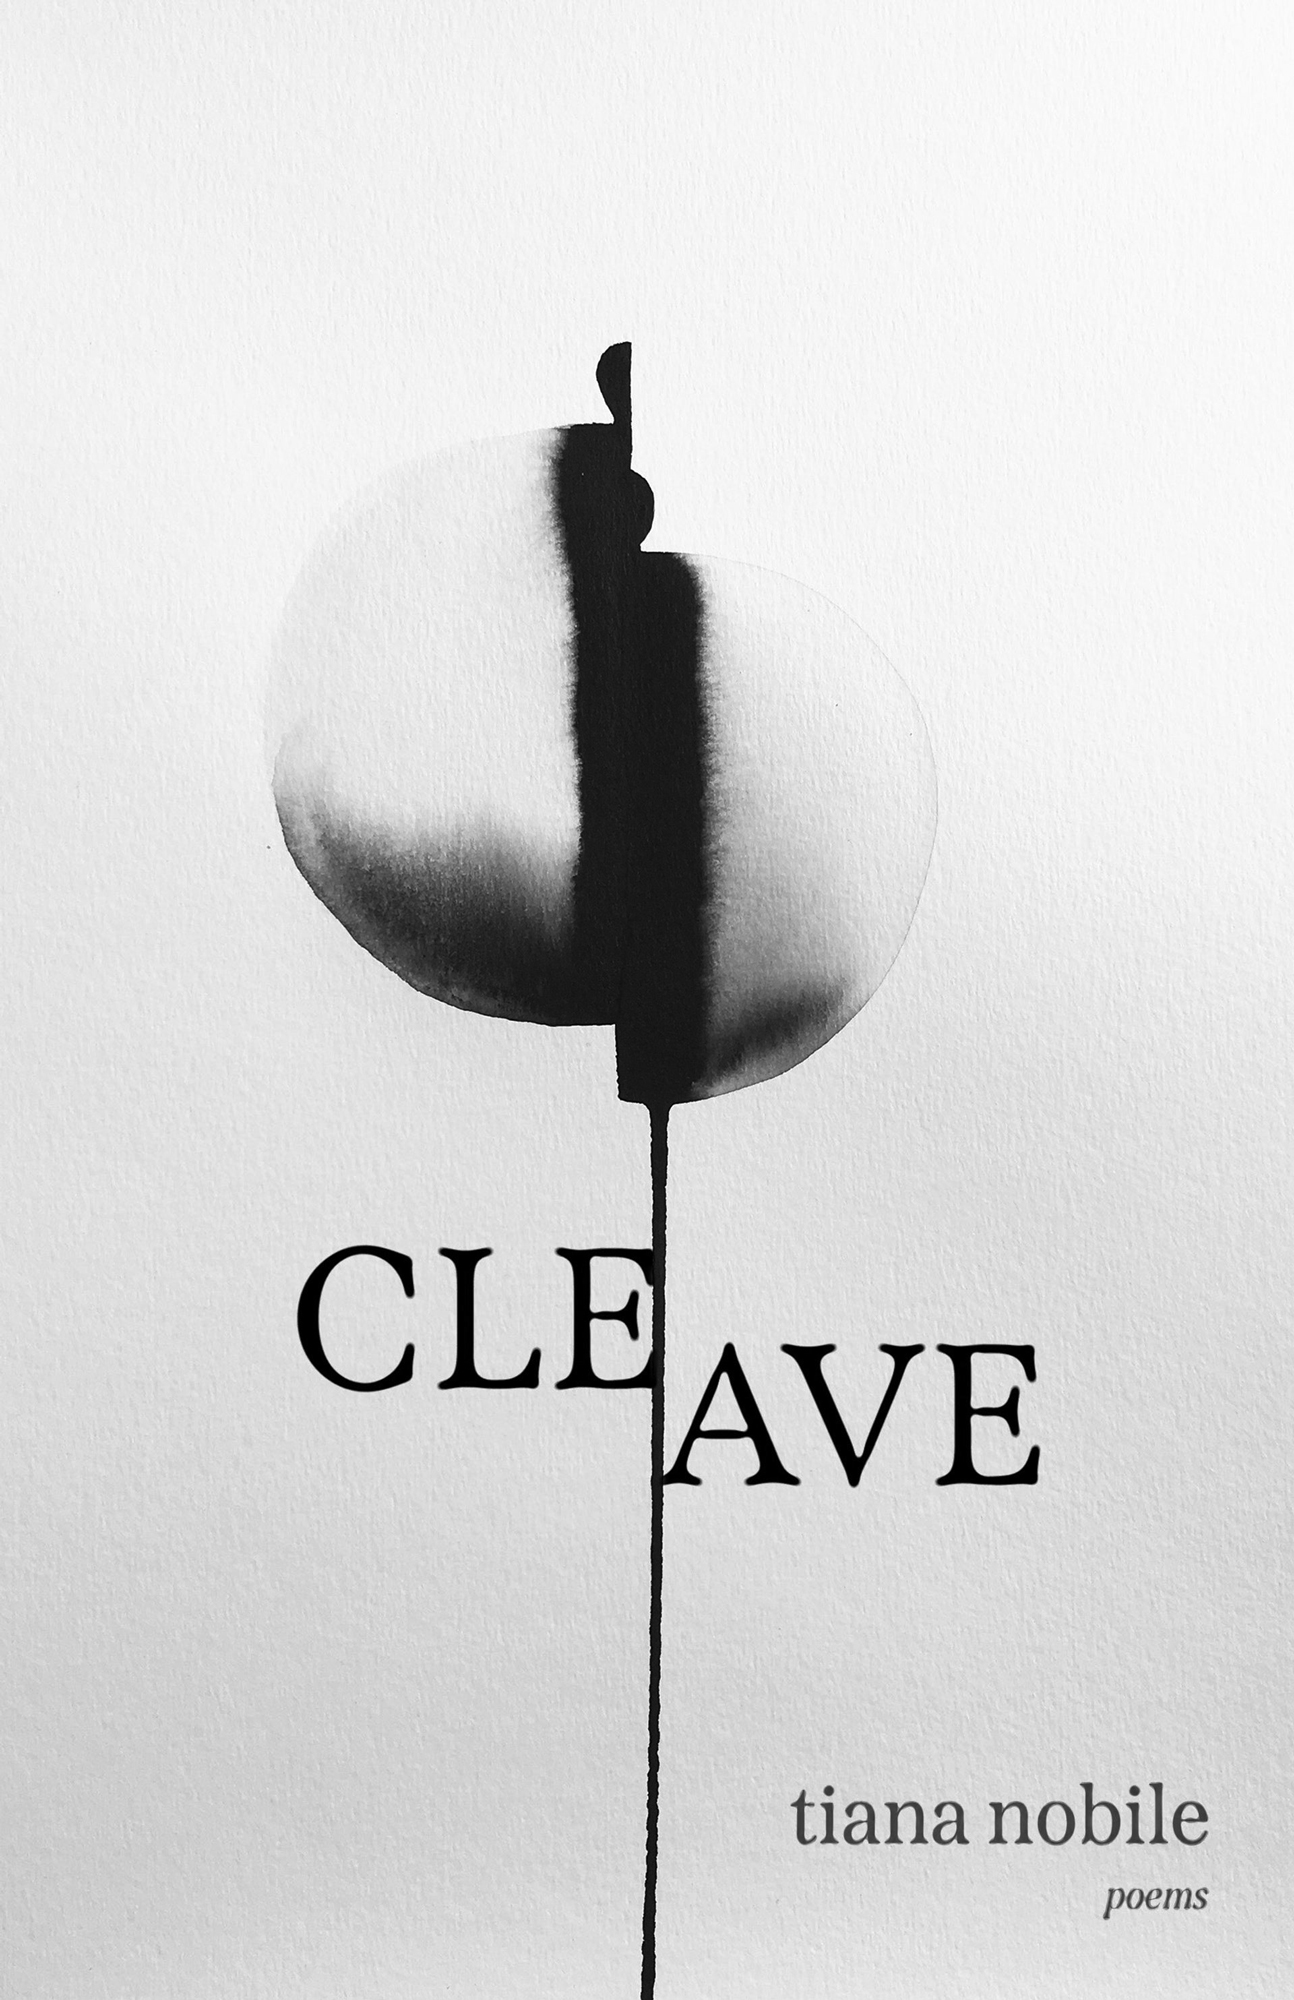 """Book cover for Cleave by Tiana Nobile. The cover is mostly white, and in the center is a sphere that's been sliced in half and is slightly askew. There's a black line at the center of it. The line extends past the sphere and leads to the word """"Cleave"""" which is written in black. In the bottom right corner reads """"Tiana Nobile / poems."""""""